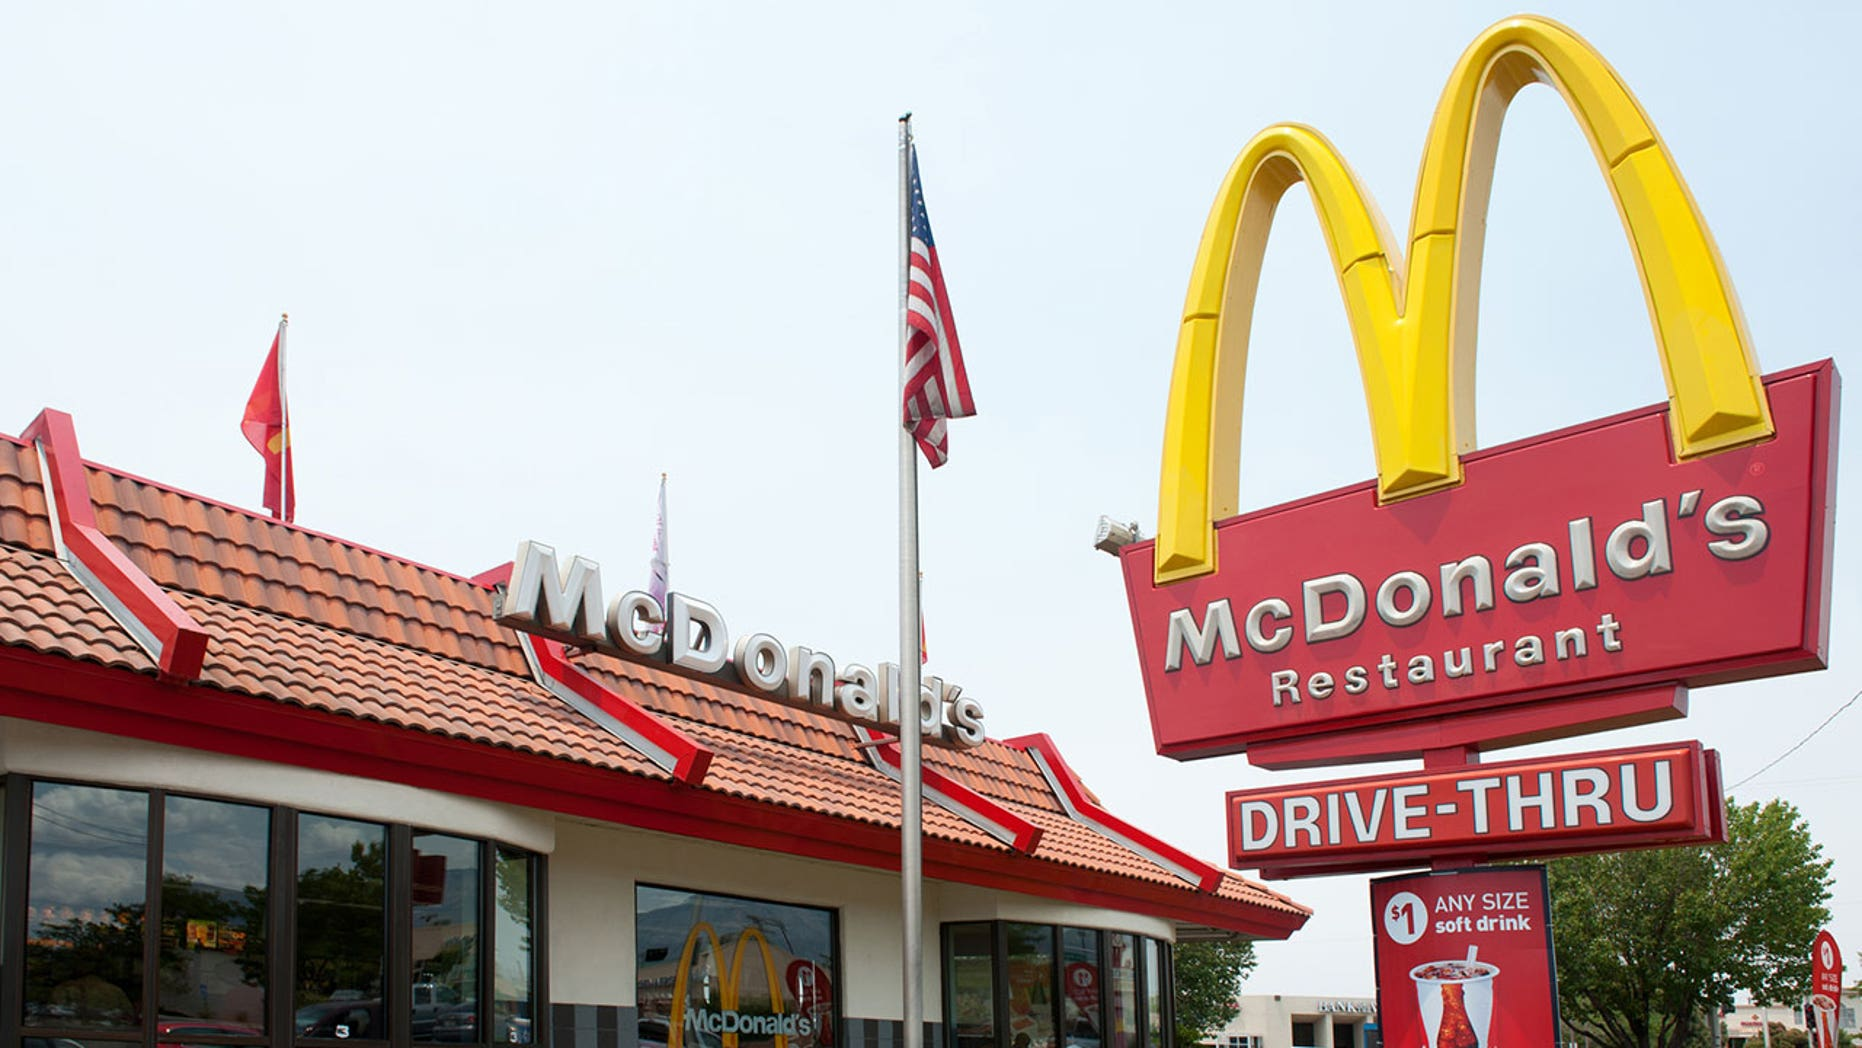 McDonald's employees are being pranked at the drive-thru window by Travis Scott fans in a new TikTok trend. (iStock)